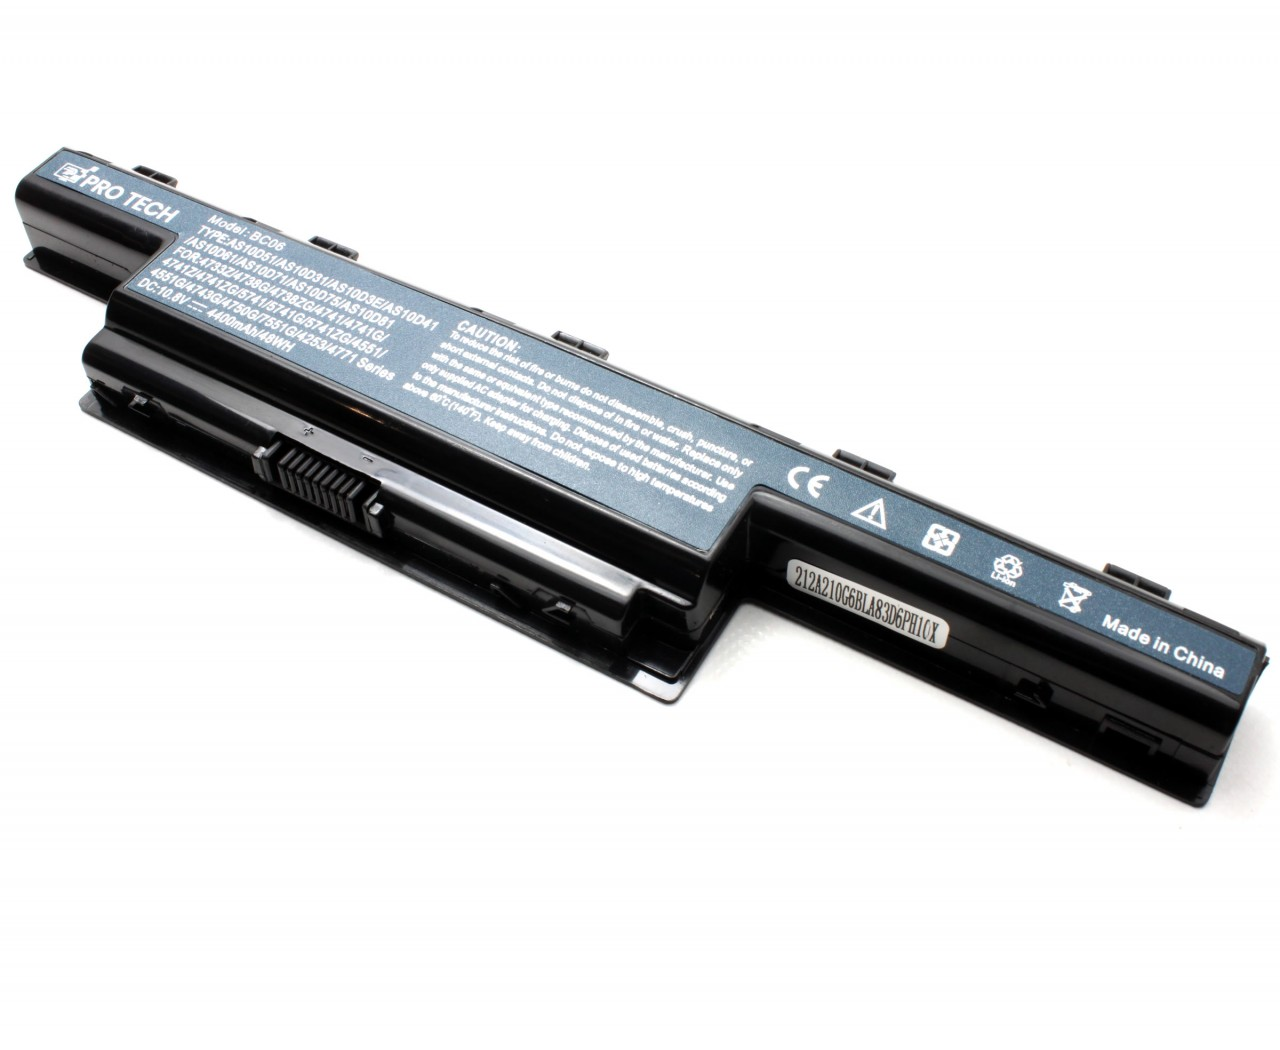 Baterie Packard Bell EasyNote LM81 9 celule imagine powerlaptop.ro 2021